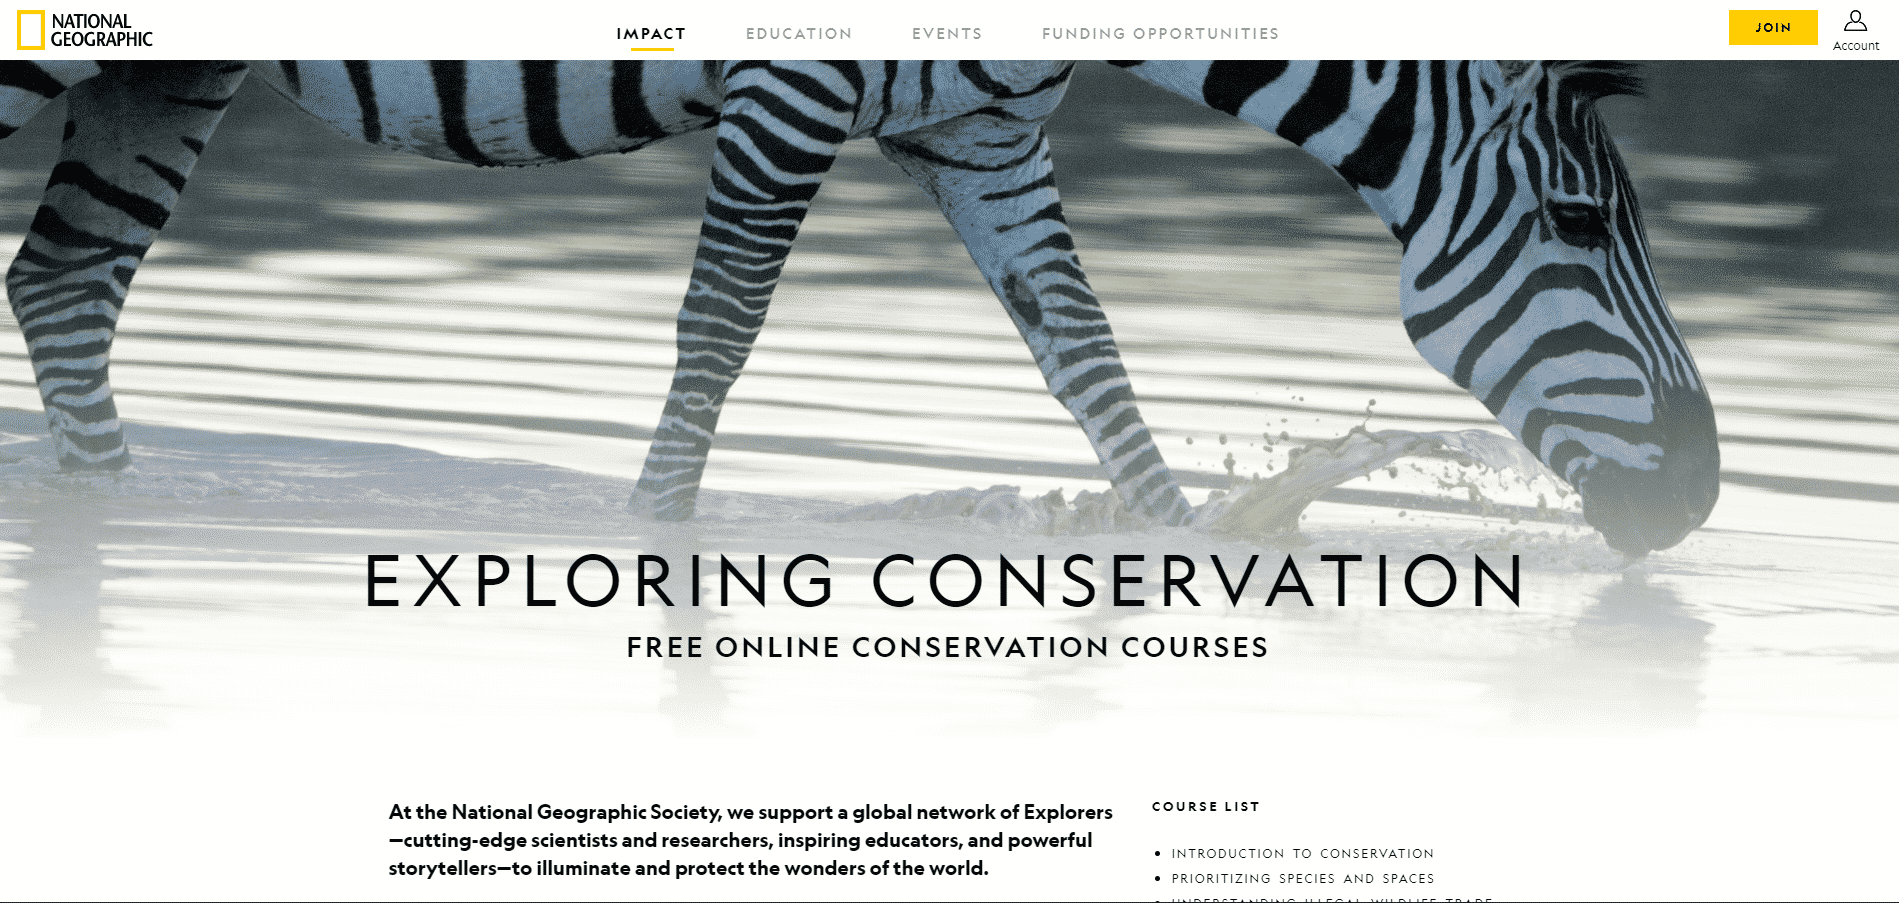 nationalgeographic Learn Conservation Lessons Online